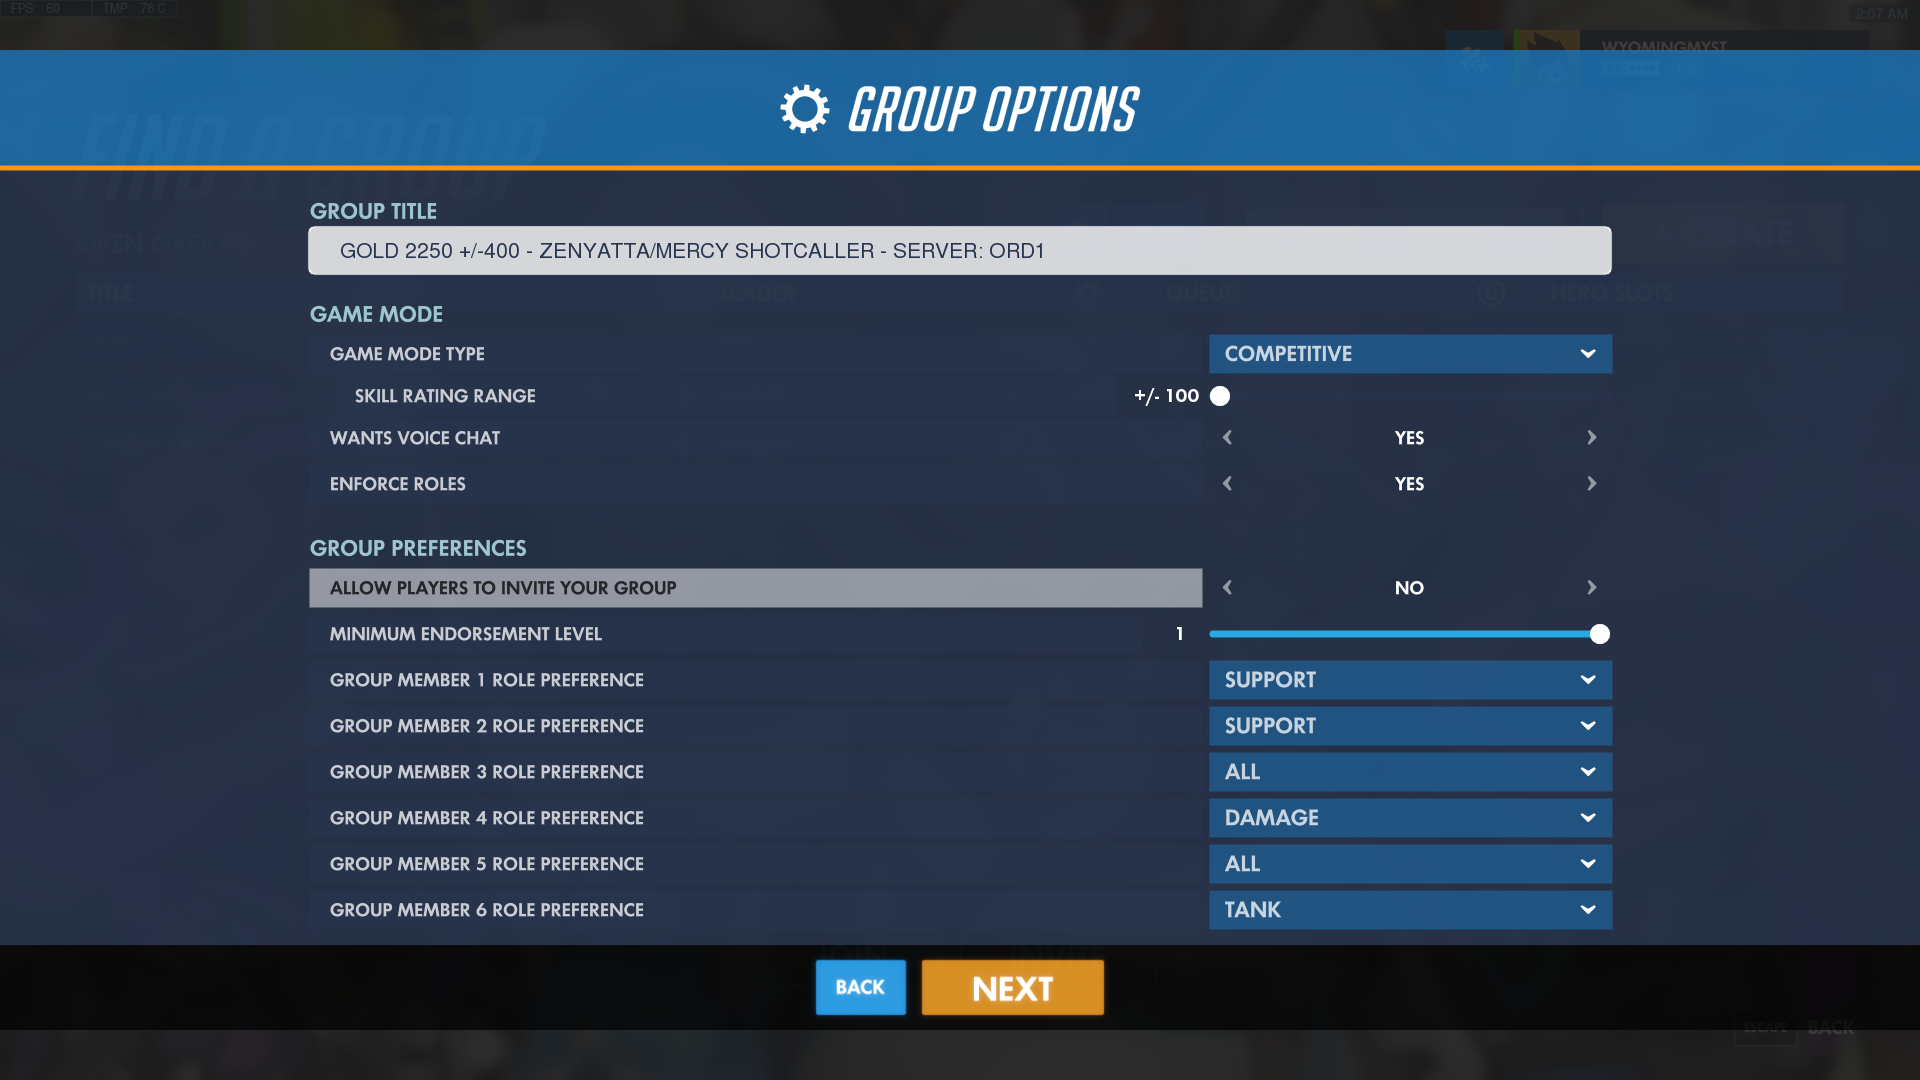 GUIDE: How to use the Looking for Group System - General